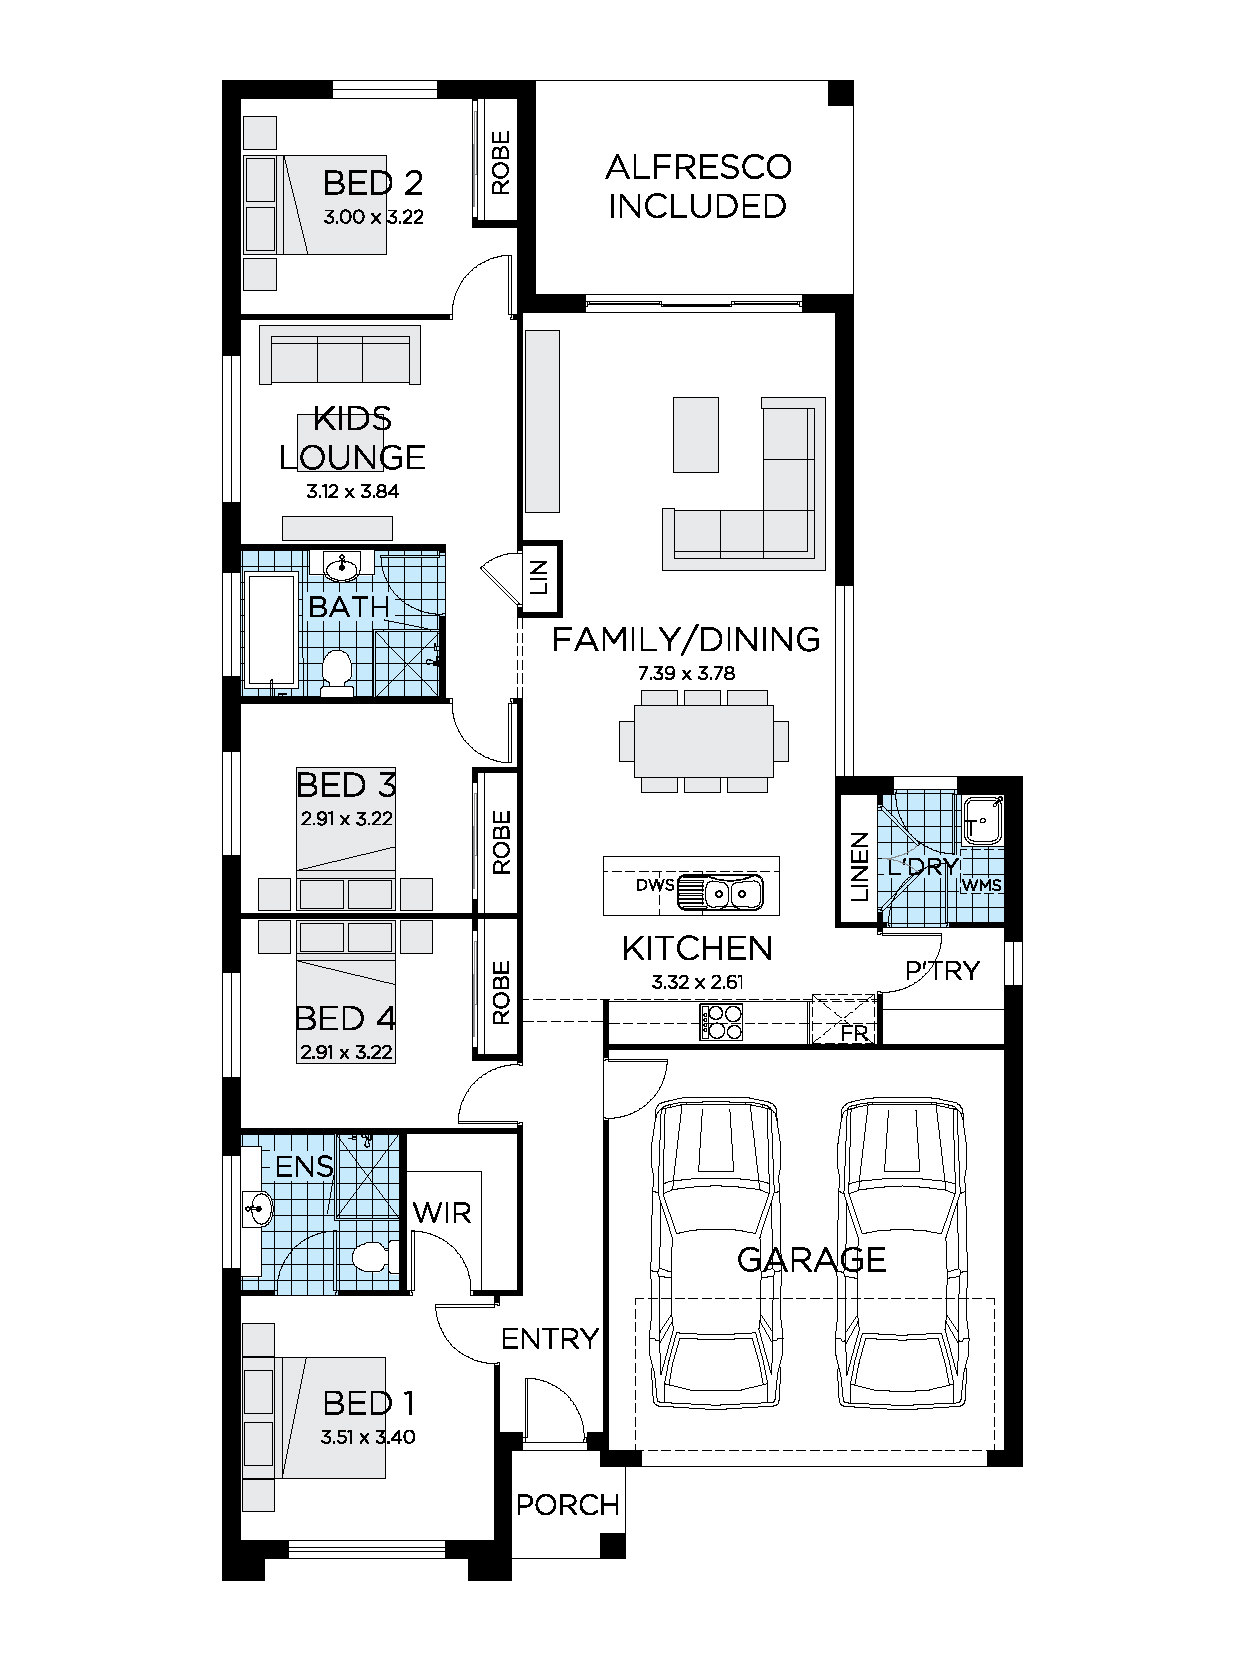 Home Designs | 3-5 Bedroom Modern House Designs | Thrive Homes on 2 story small house plans, 1 1 2 story house plans, 3 story lake house plans, two-story craftsman home plans, narrow houses floor plans, 2 story country house plans, narrow urban row house plans, three-story narrow house plans, zero 2 story narrow lot plans, clapboard house plans, small lot house plans, two story lake house plans, two-story modular home plans, home style craftsman house plans, subdivision house floor plans, two-story saltbox house plans, 3 bedroom 2 story house plans, two-story tudor house plans, craftsman narrow house plans,